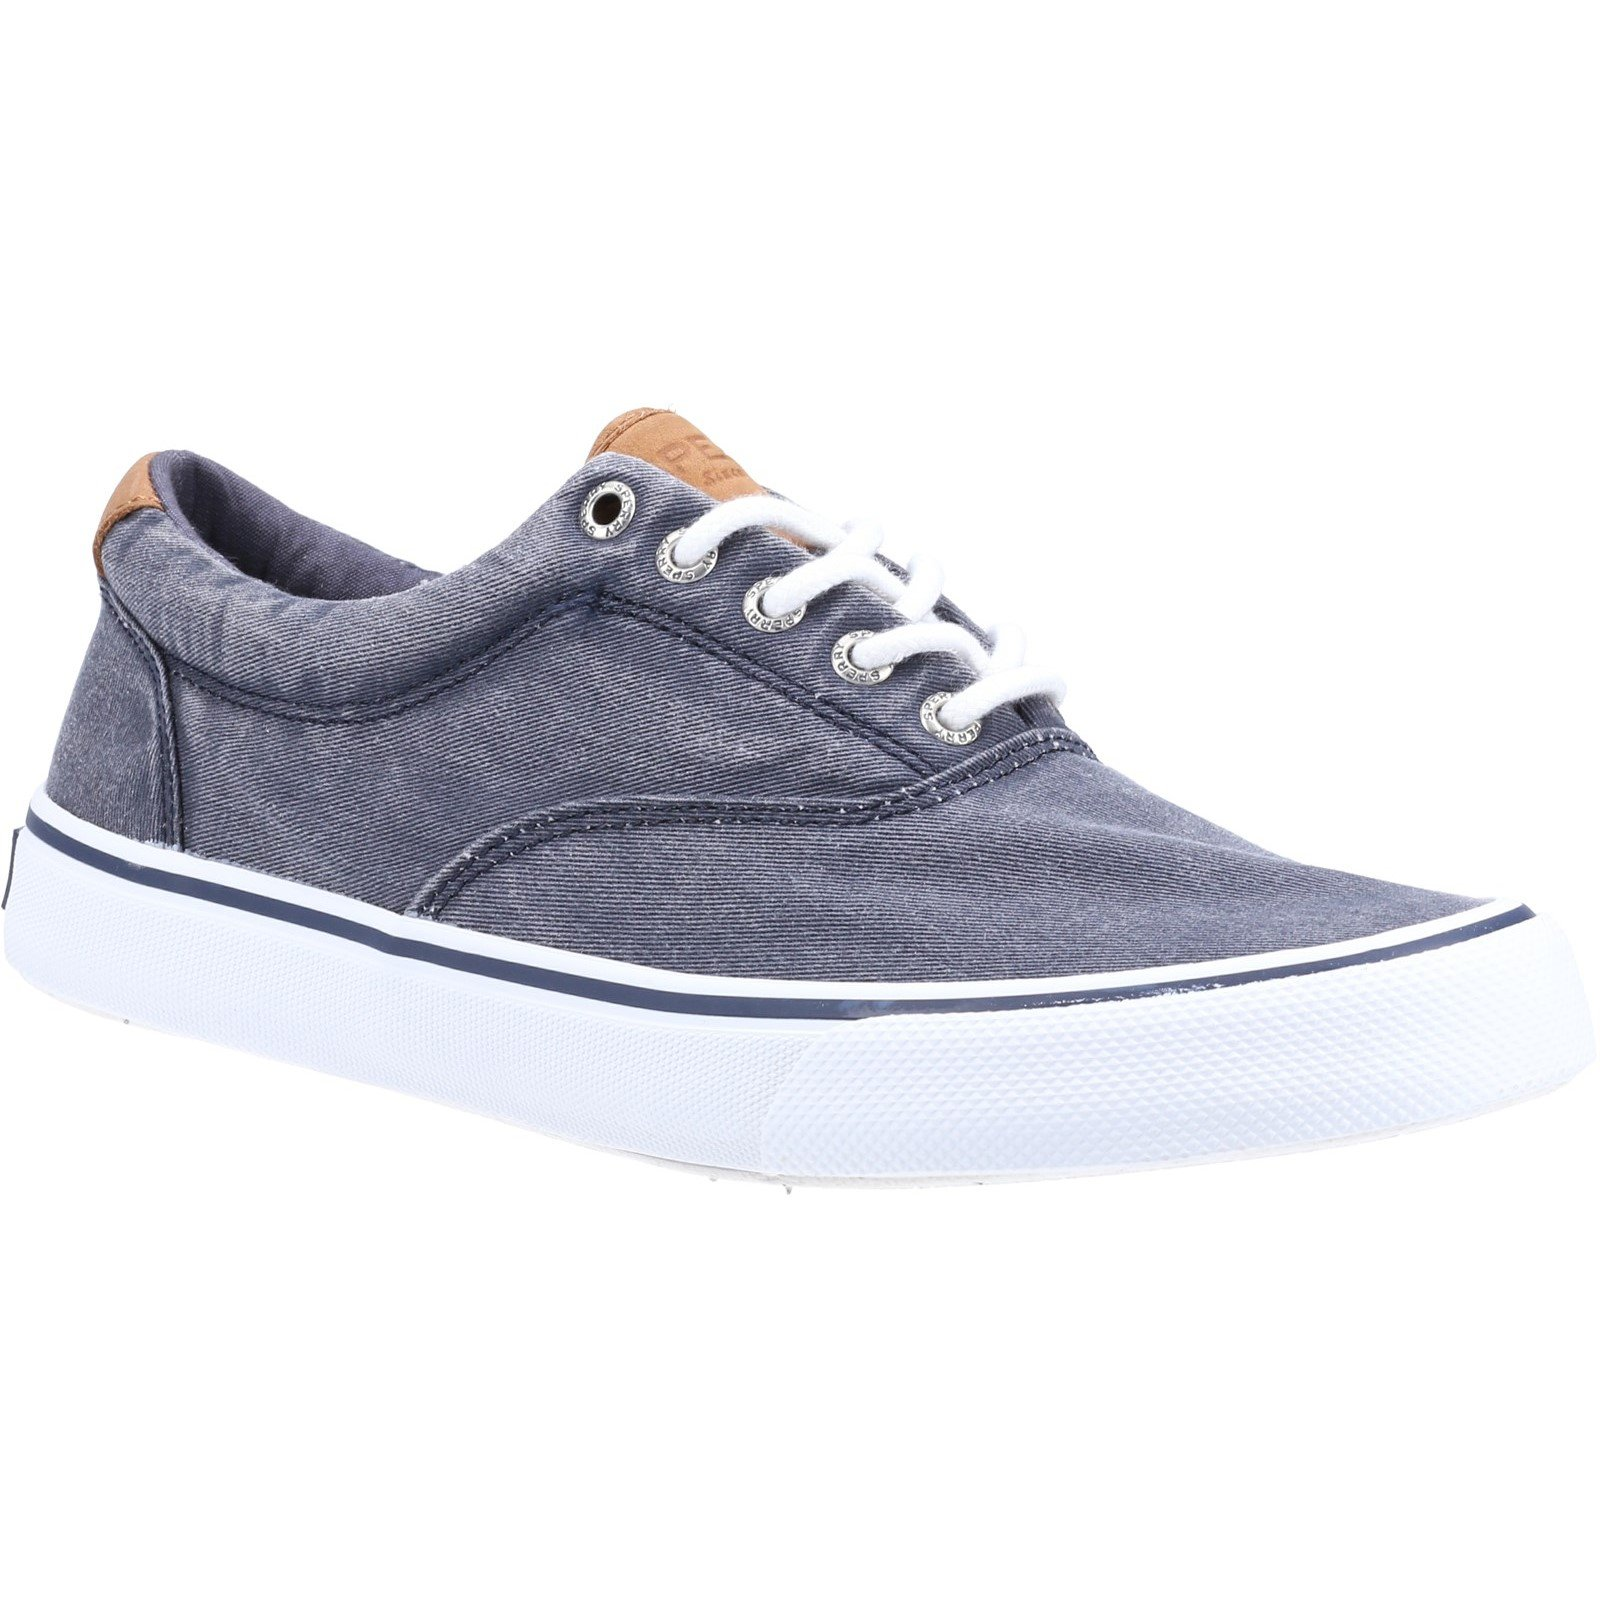 Sperry Men's Striper II CVO Canvas Trainers Various Colours 32397 - Salt Washed Navy 11